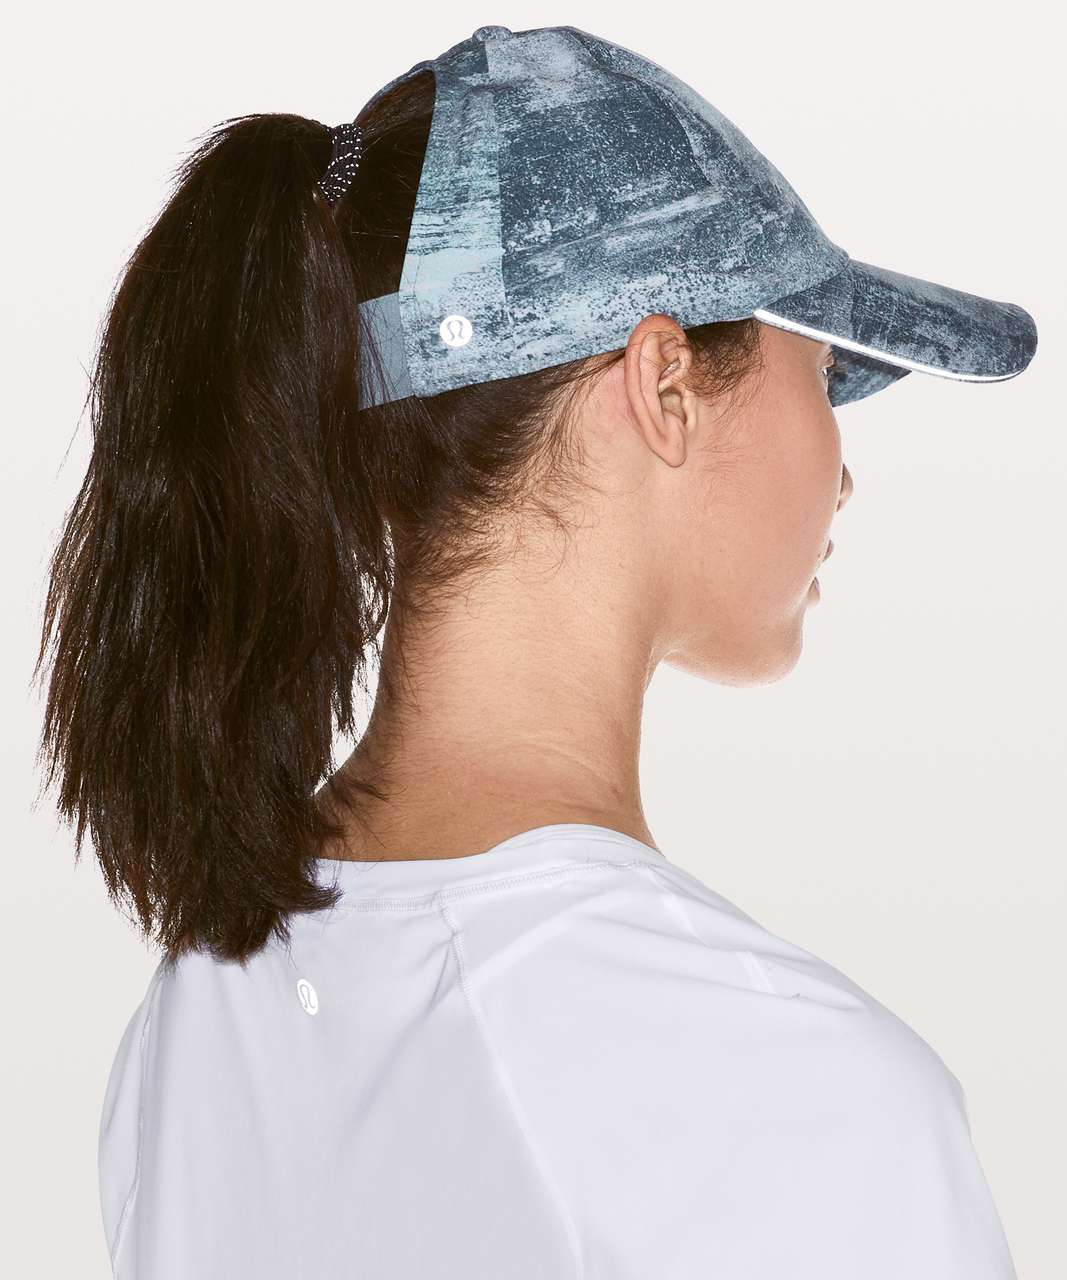 Lululemon Baller Hat Run *Ponytail - Azurite Mint Tint Multi / Blue Cast